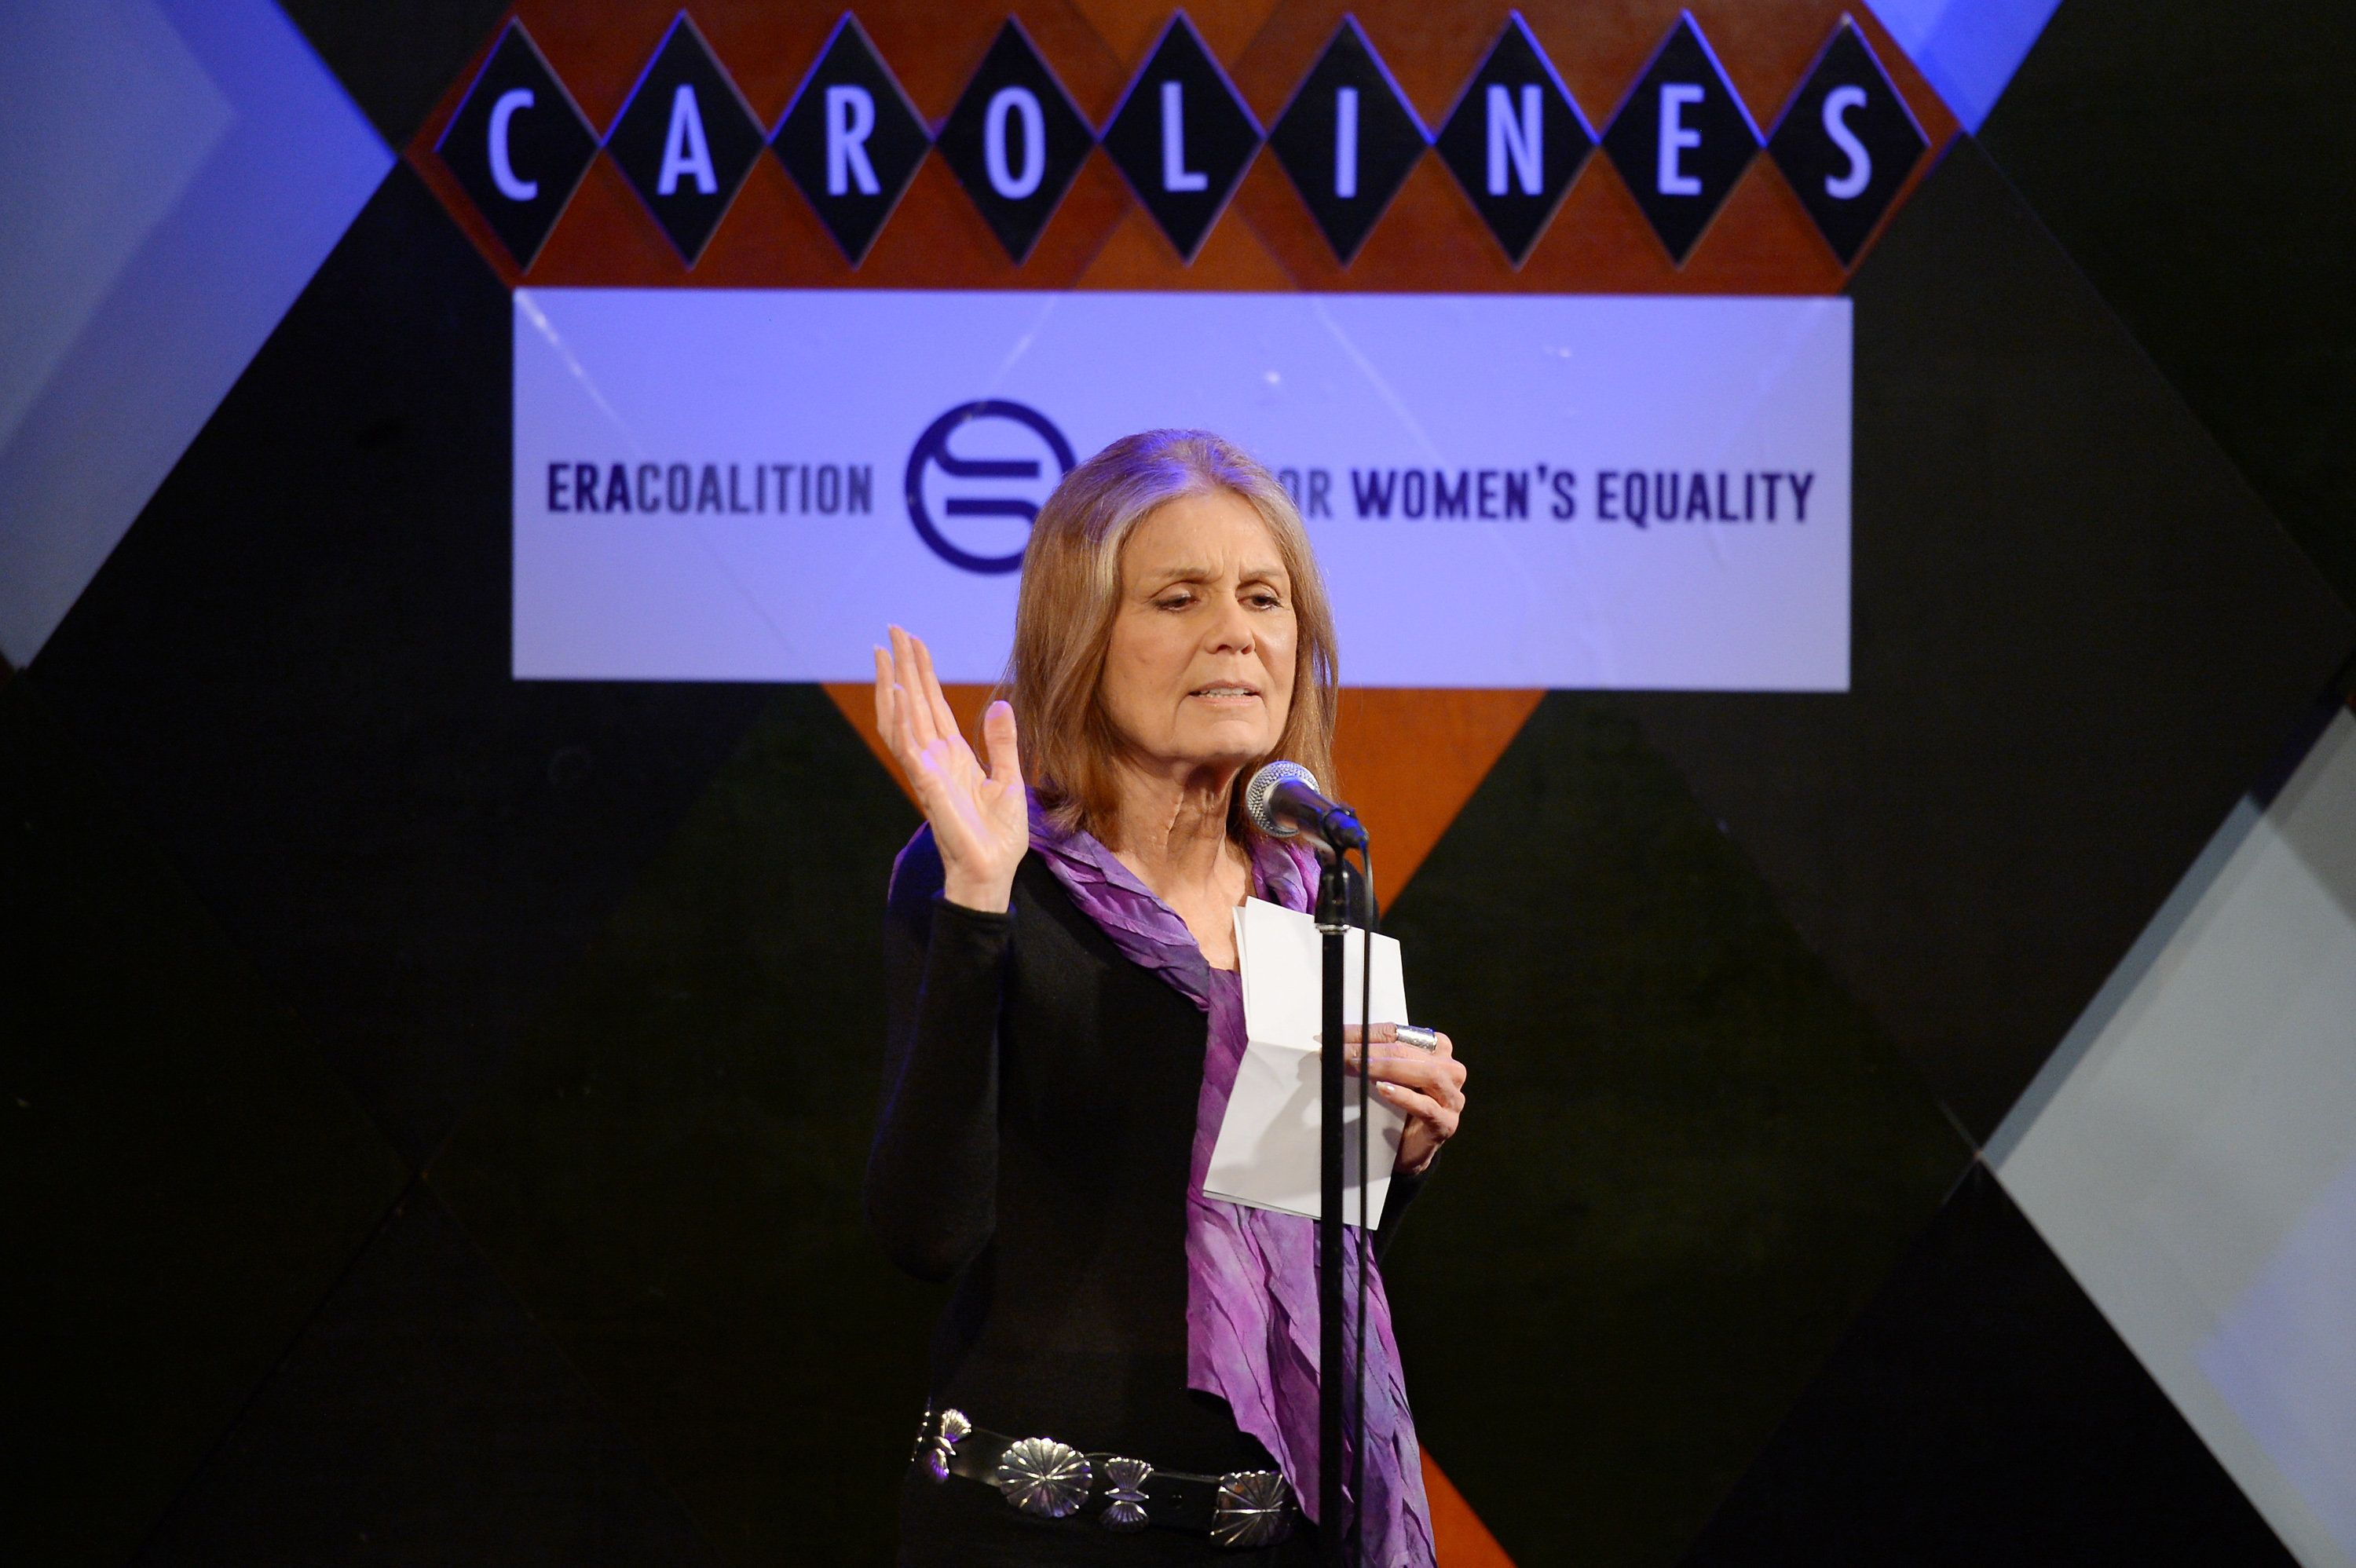 Gloria Steinem speaking at a fundraiser for the Fund for Women's Equality and the ERA Coalition on Feb. 7, 2016 in New York C